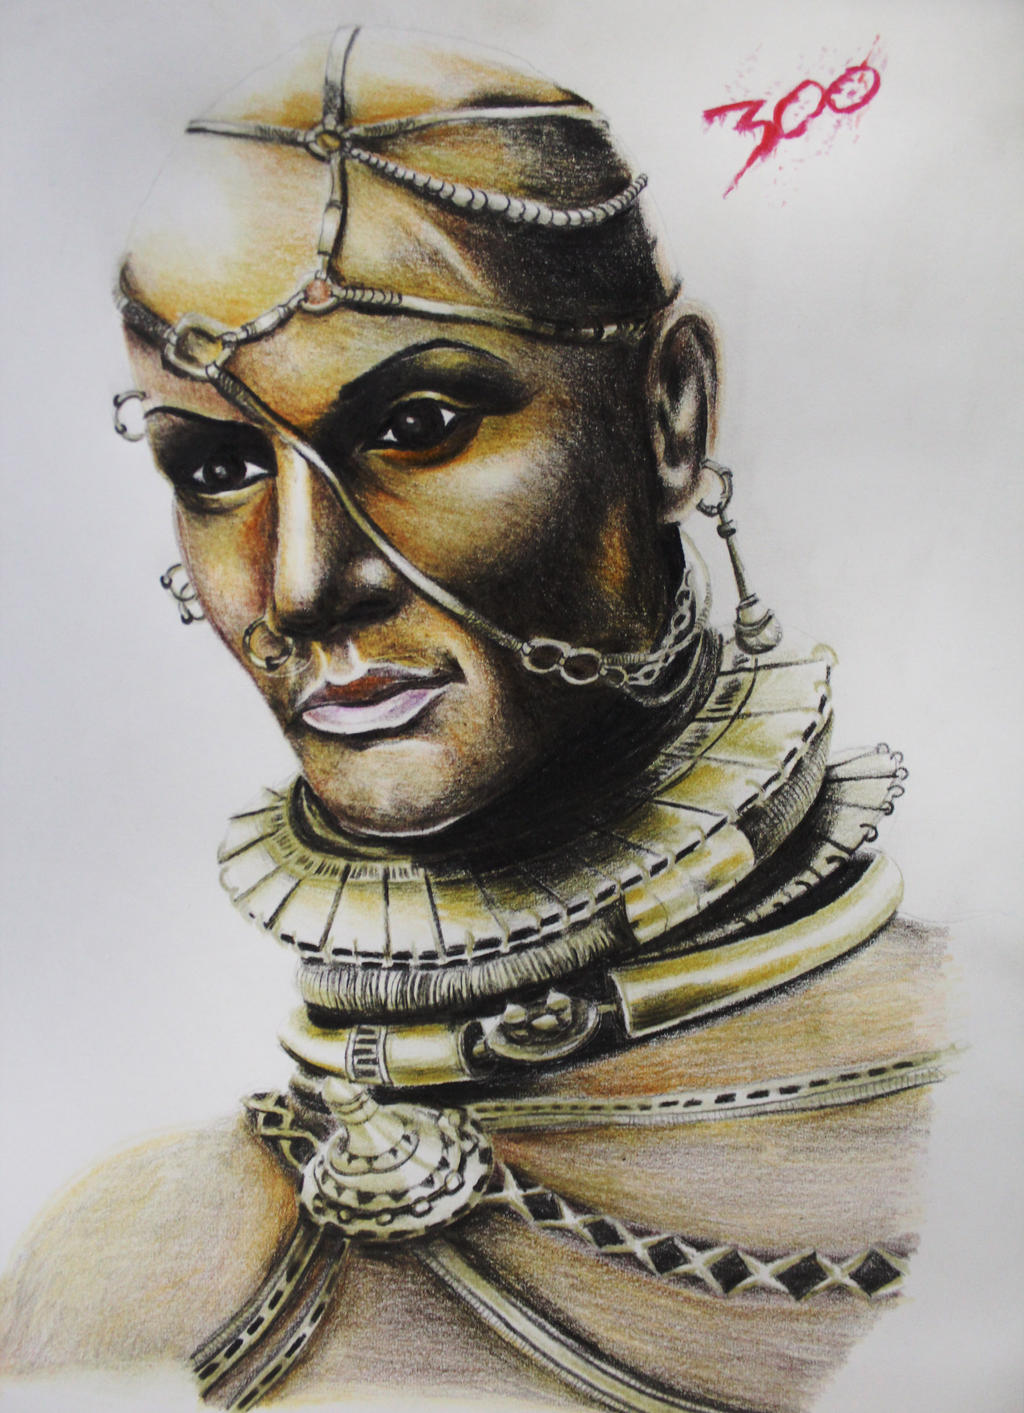 The God's King Xerxes I of Persia by Gutter1333 on DeviantArt